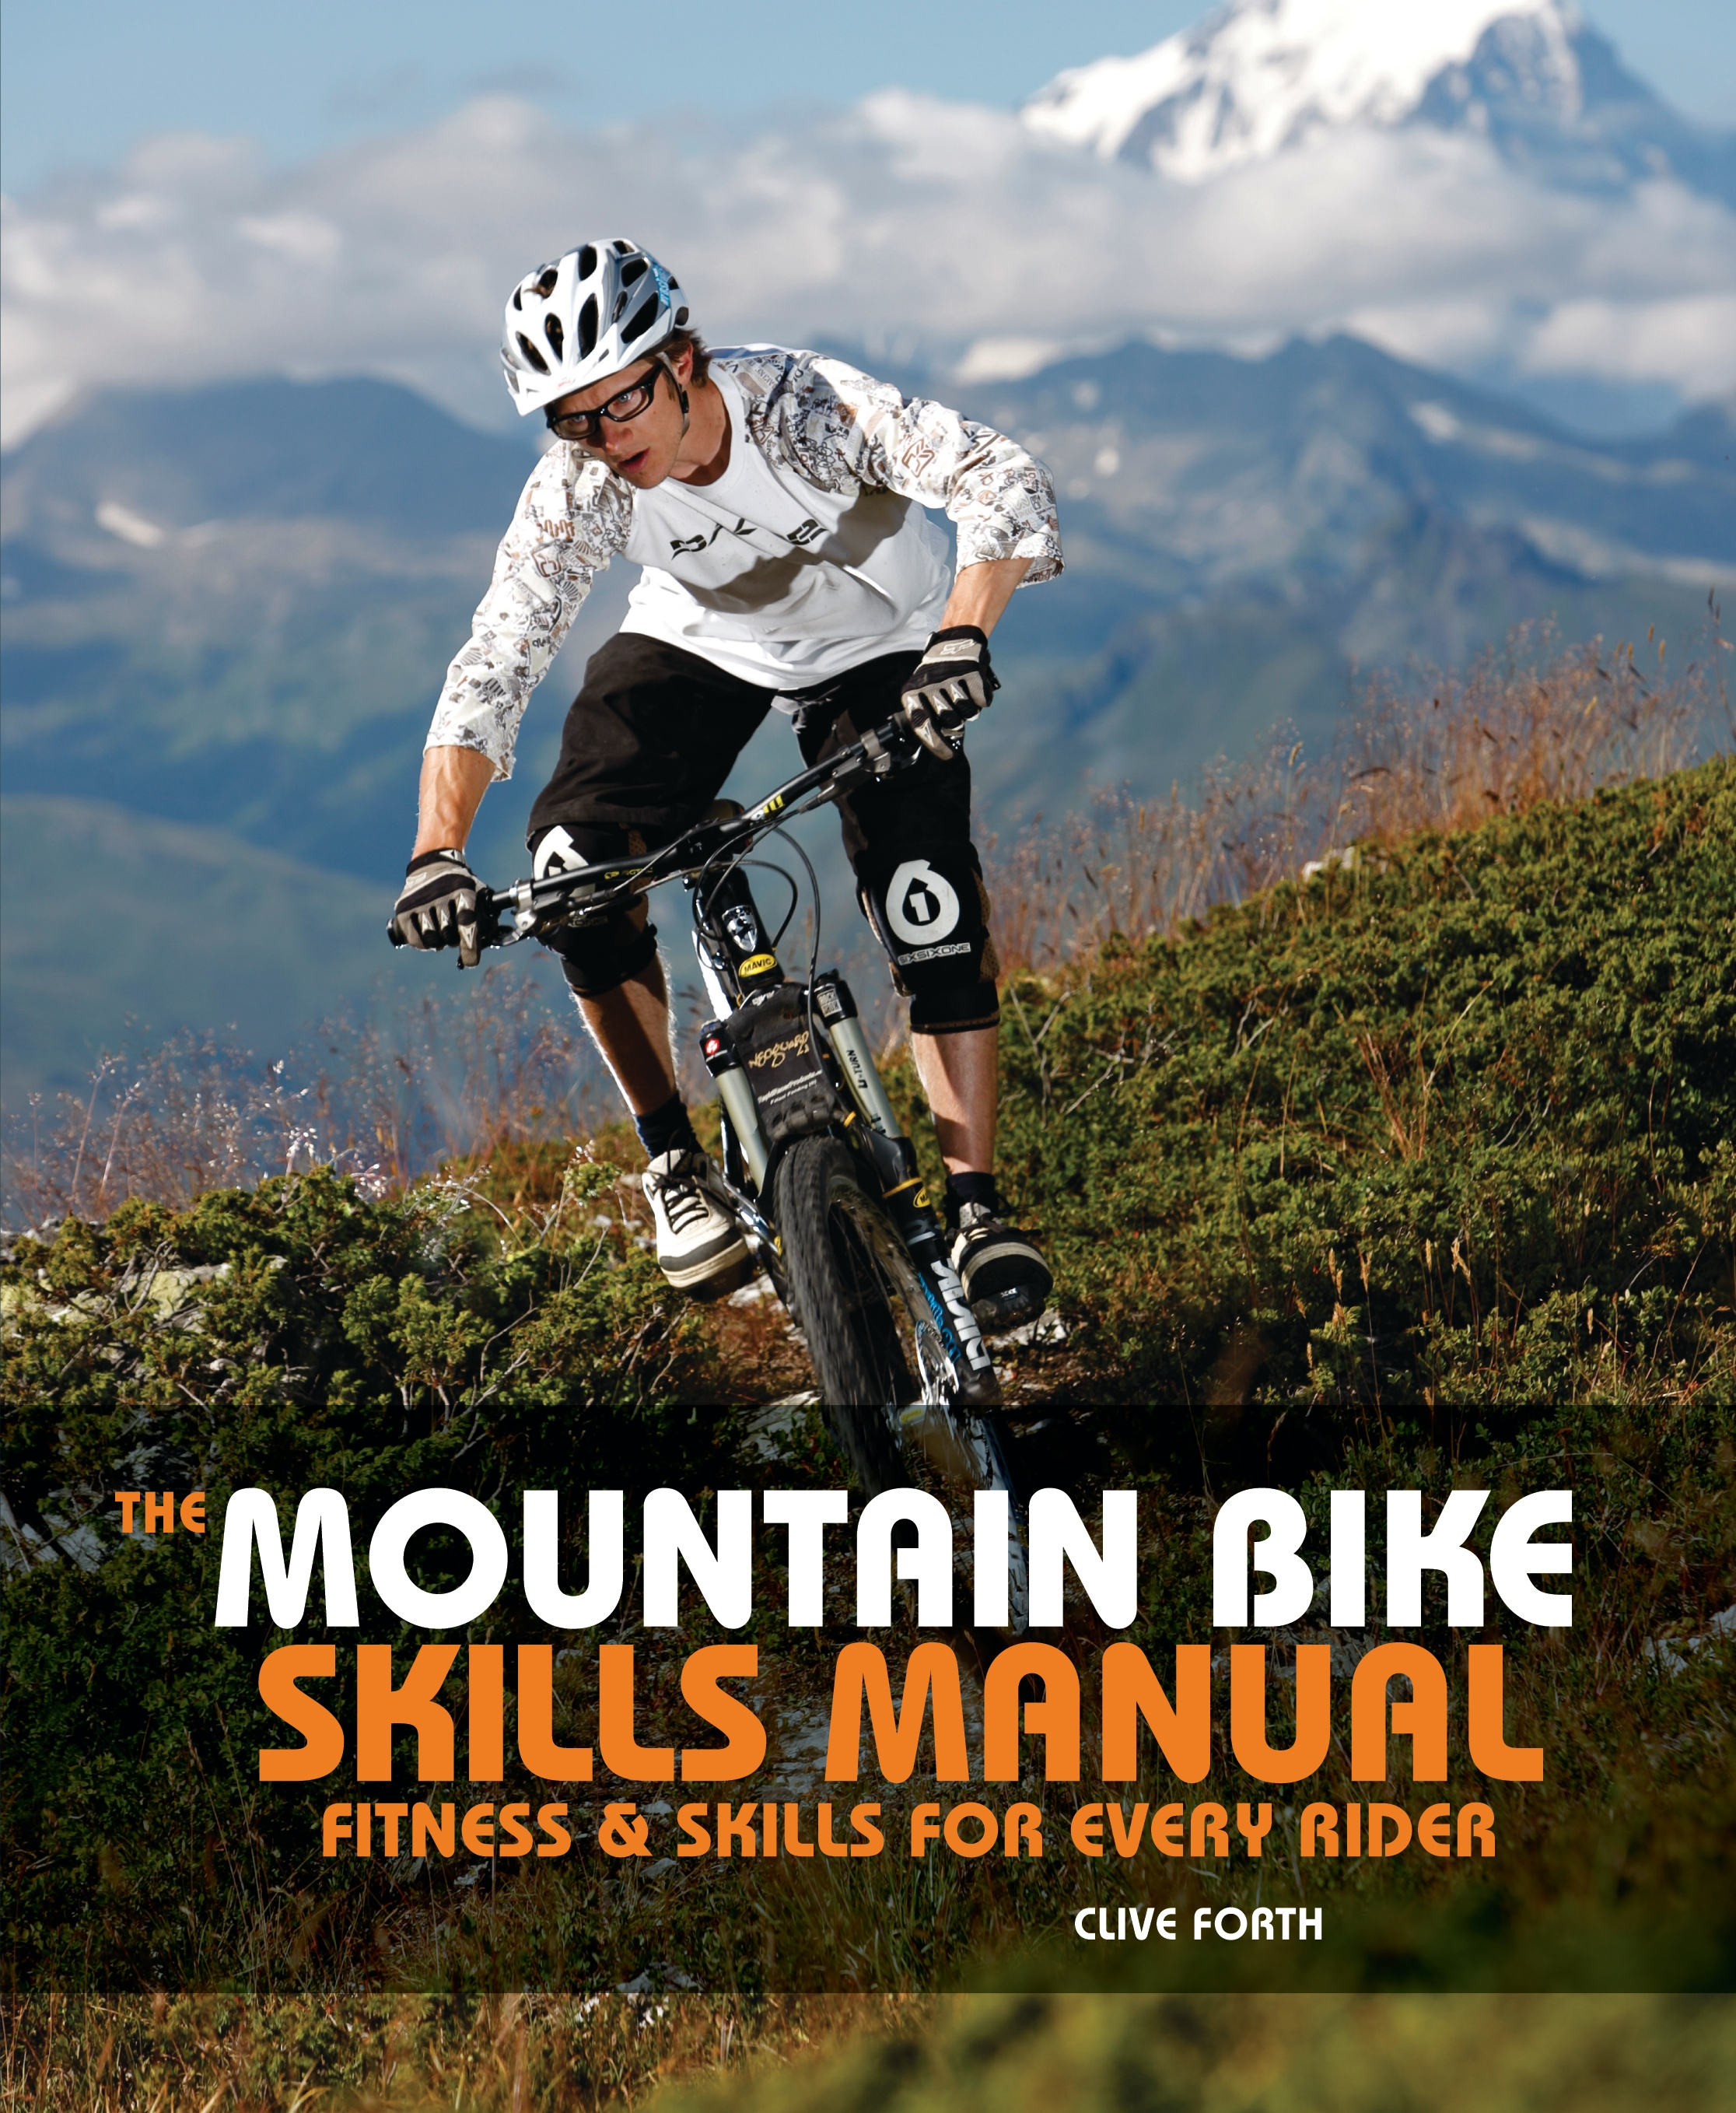 The Mountain Bike Skills Manual Fitness and Skills for Every Rider